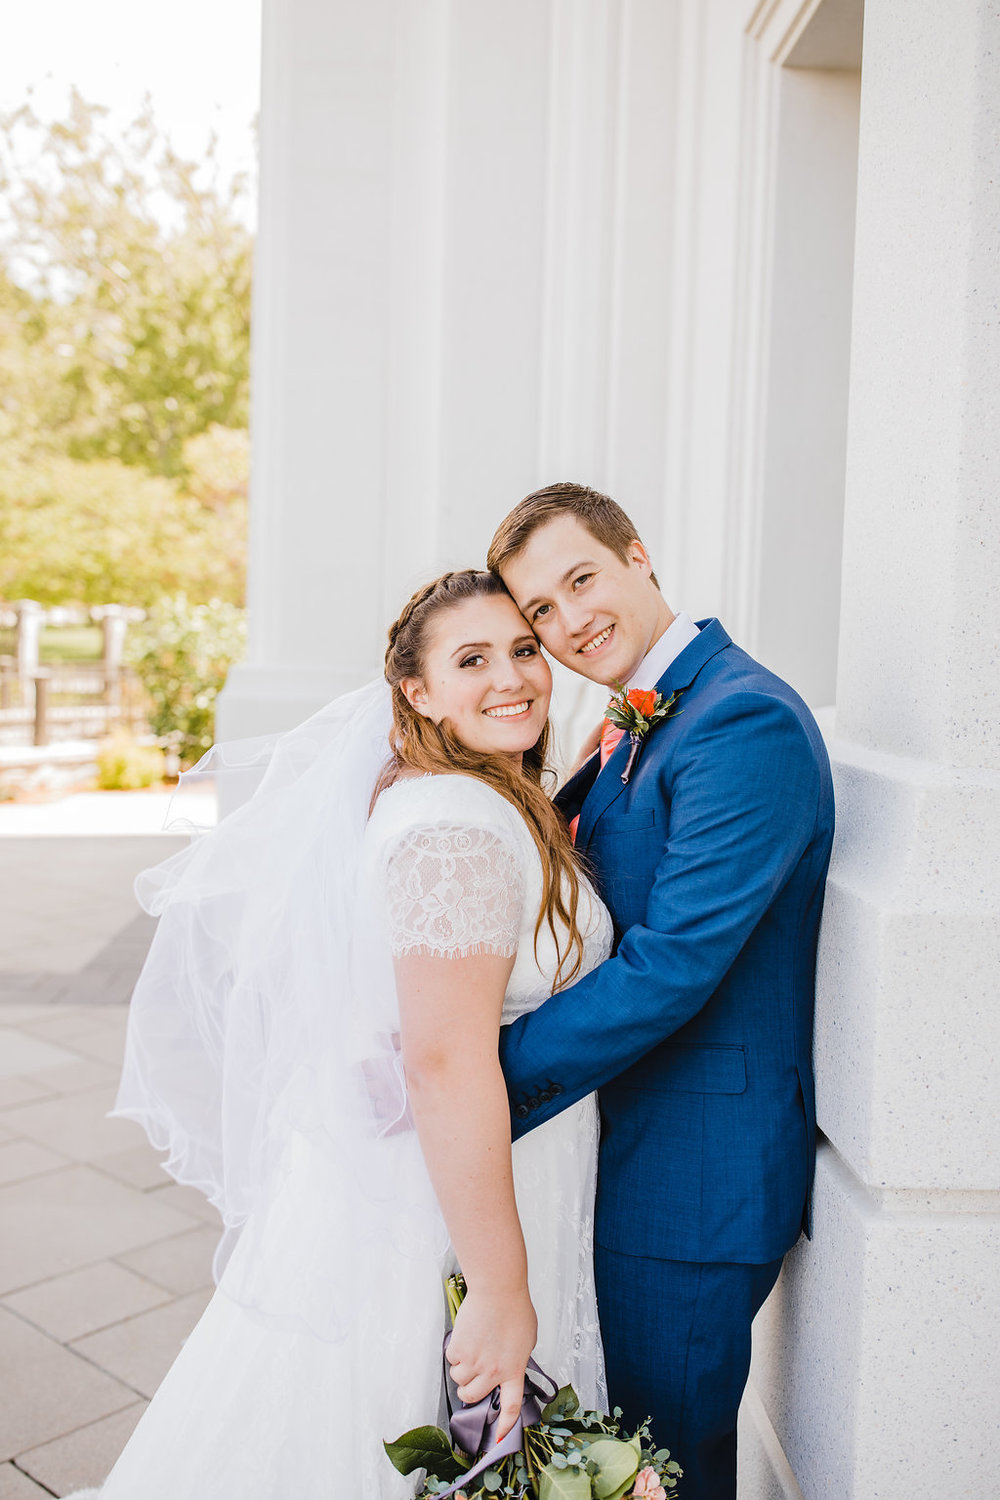 professional wedding day photographer in brigham city utah at the temple